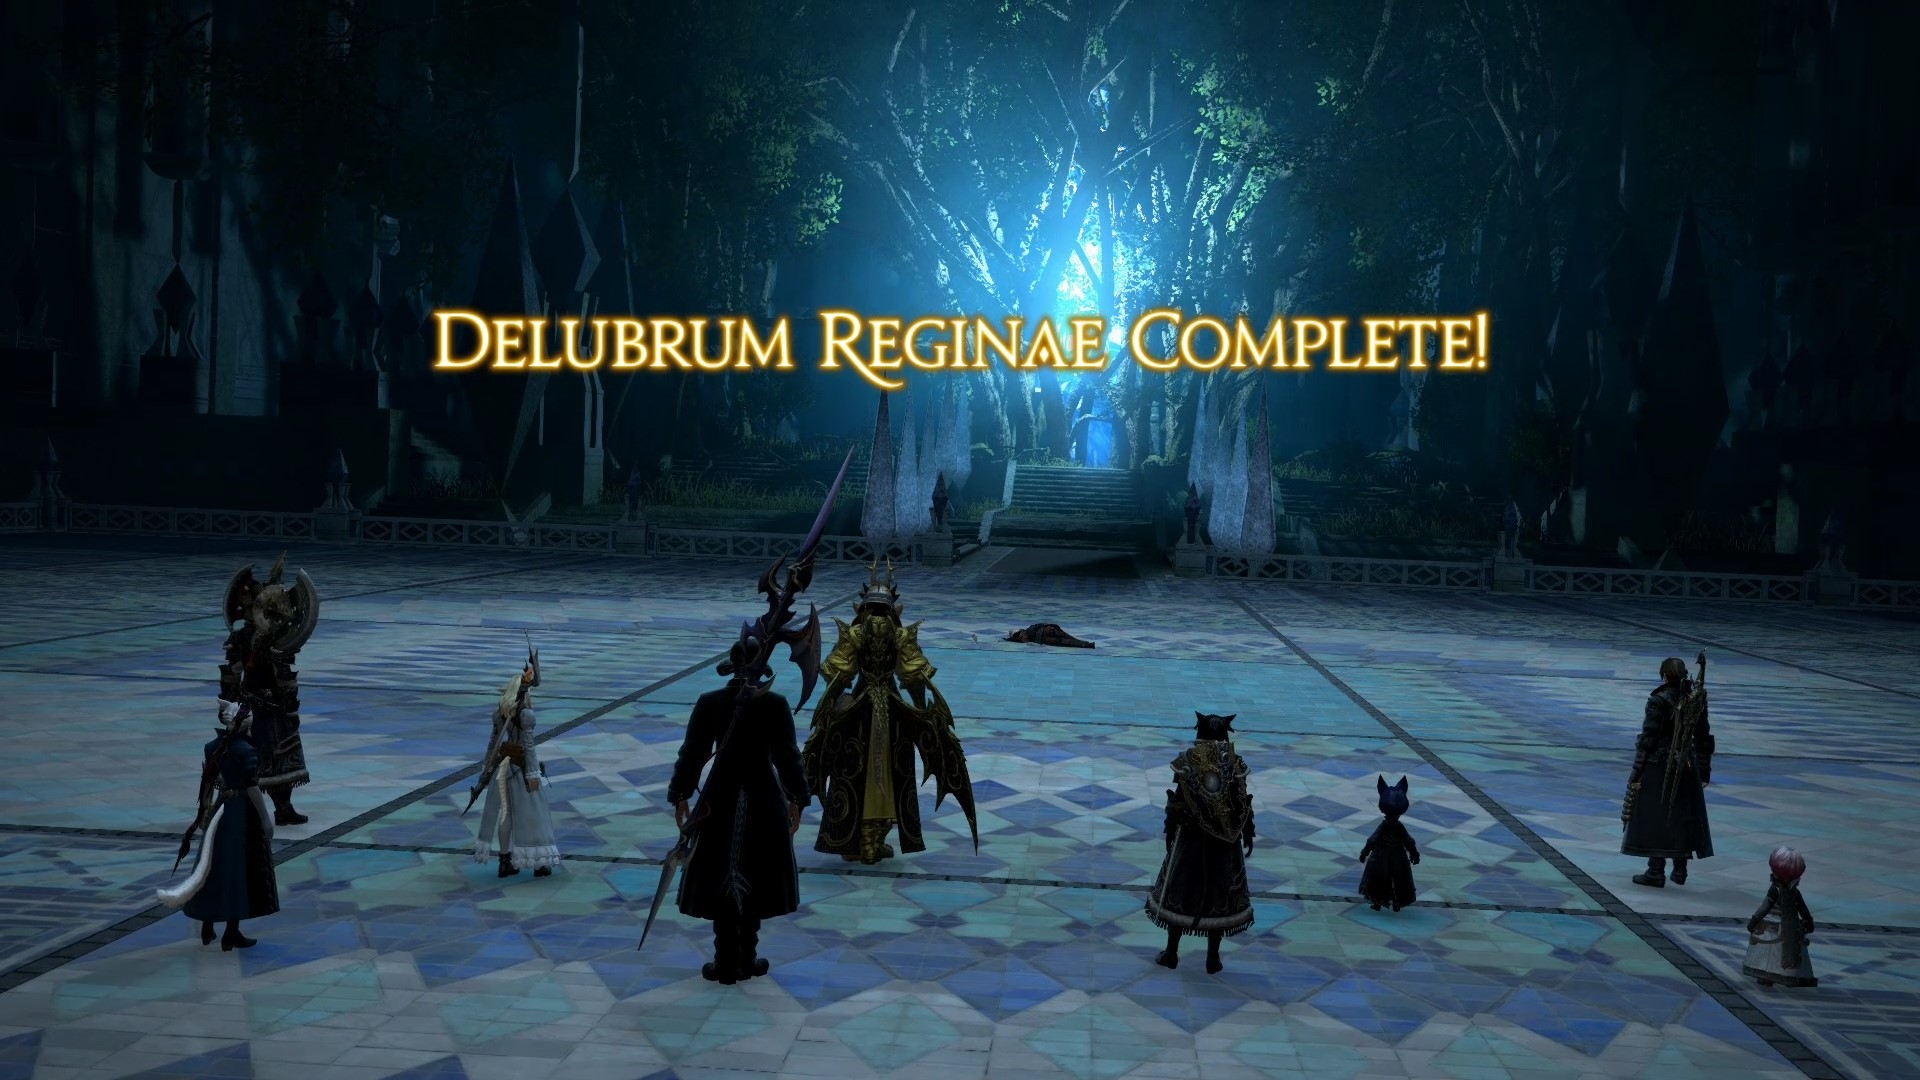 Delubrum Reginae complete. Congrats on the clear!